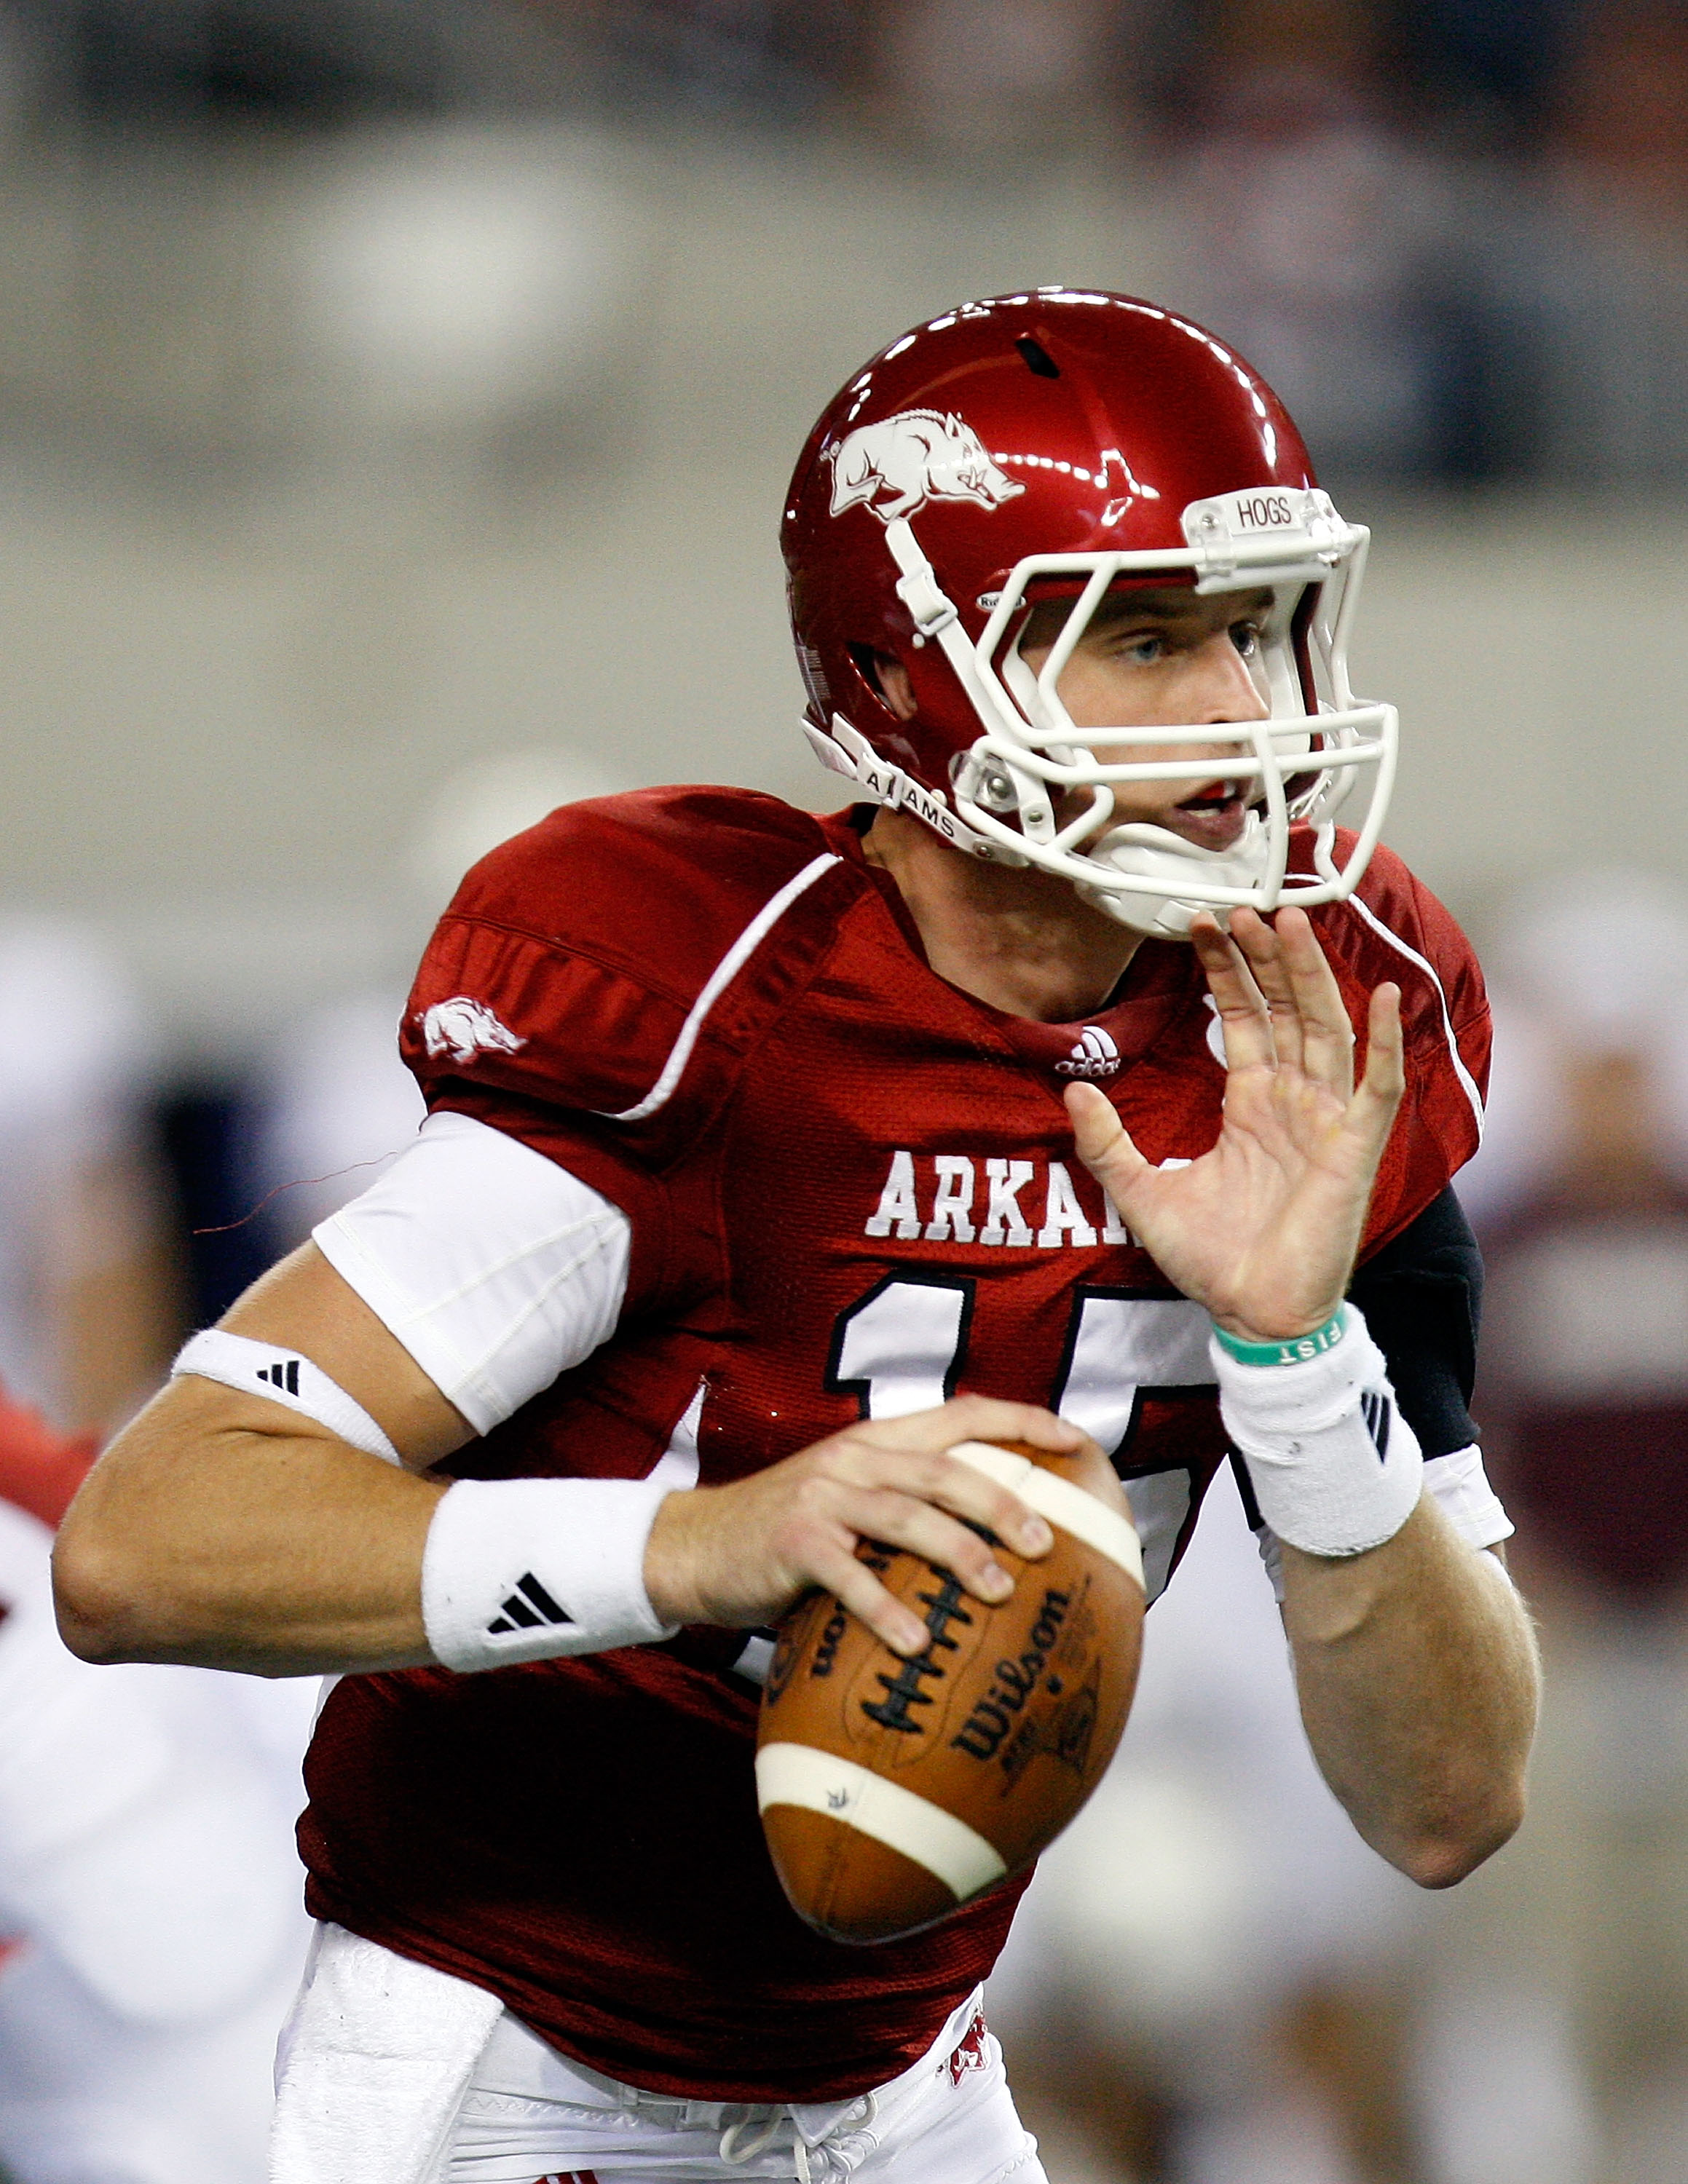 ARLINGTON, TX - OCTOBER 03:  Quarterback Ryan Mallett #15 of the Arkansas Razorbacks drops back to pass against the Texas A&M Aggies at Cowboys Stadium on October 3, 2009 in Arlington, Texas.  (Photo by Ronald Martinez/Getty Images)